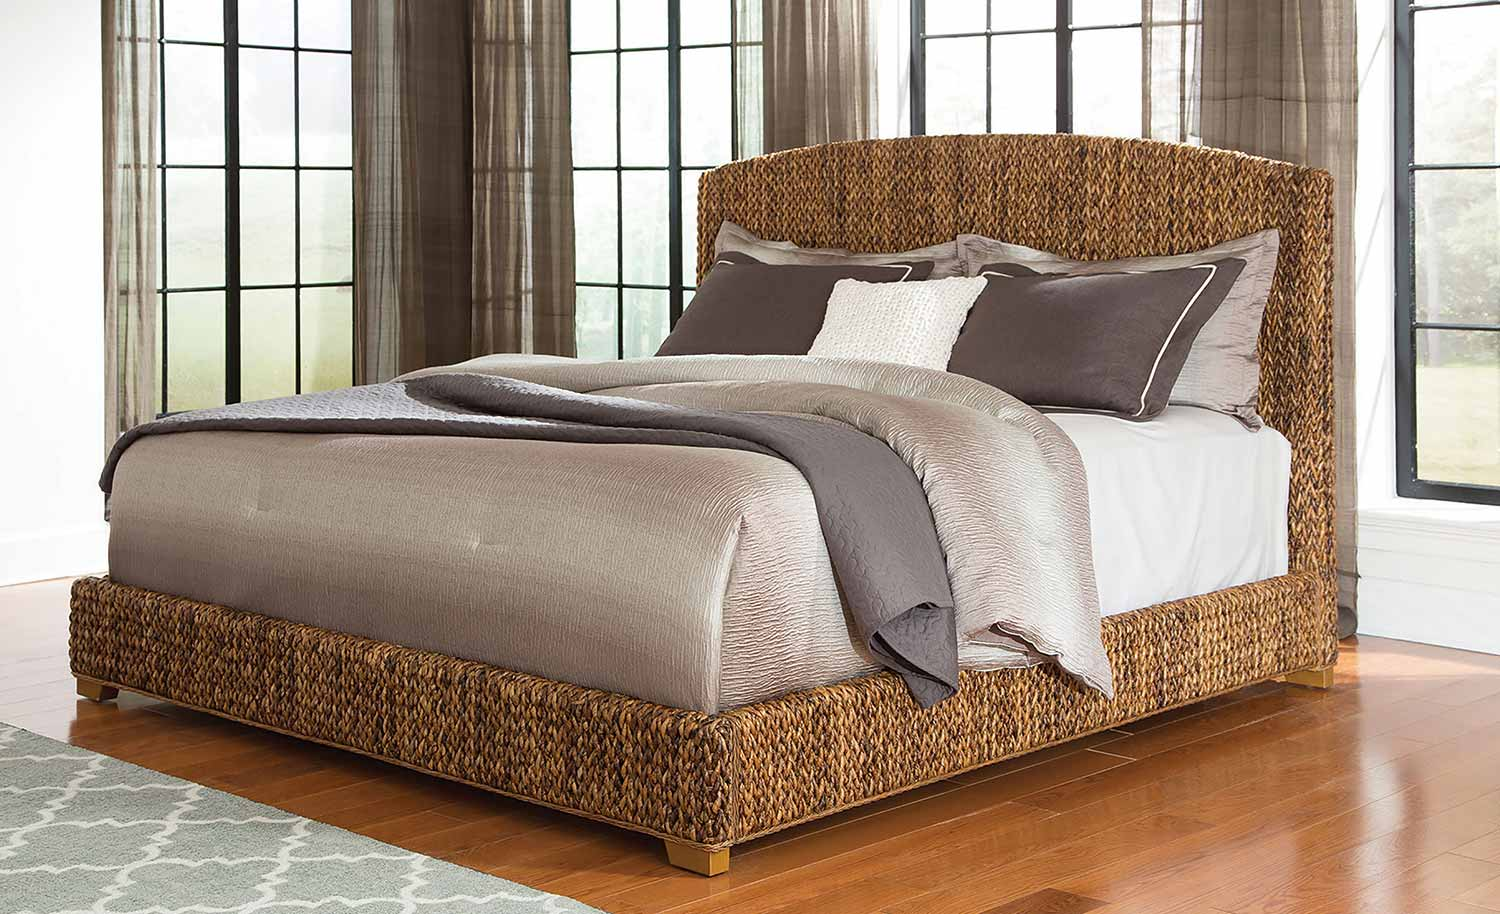 Coaster Laughton Abaca Panel Bed - Natural/Cocoa Brown